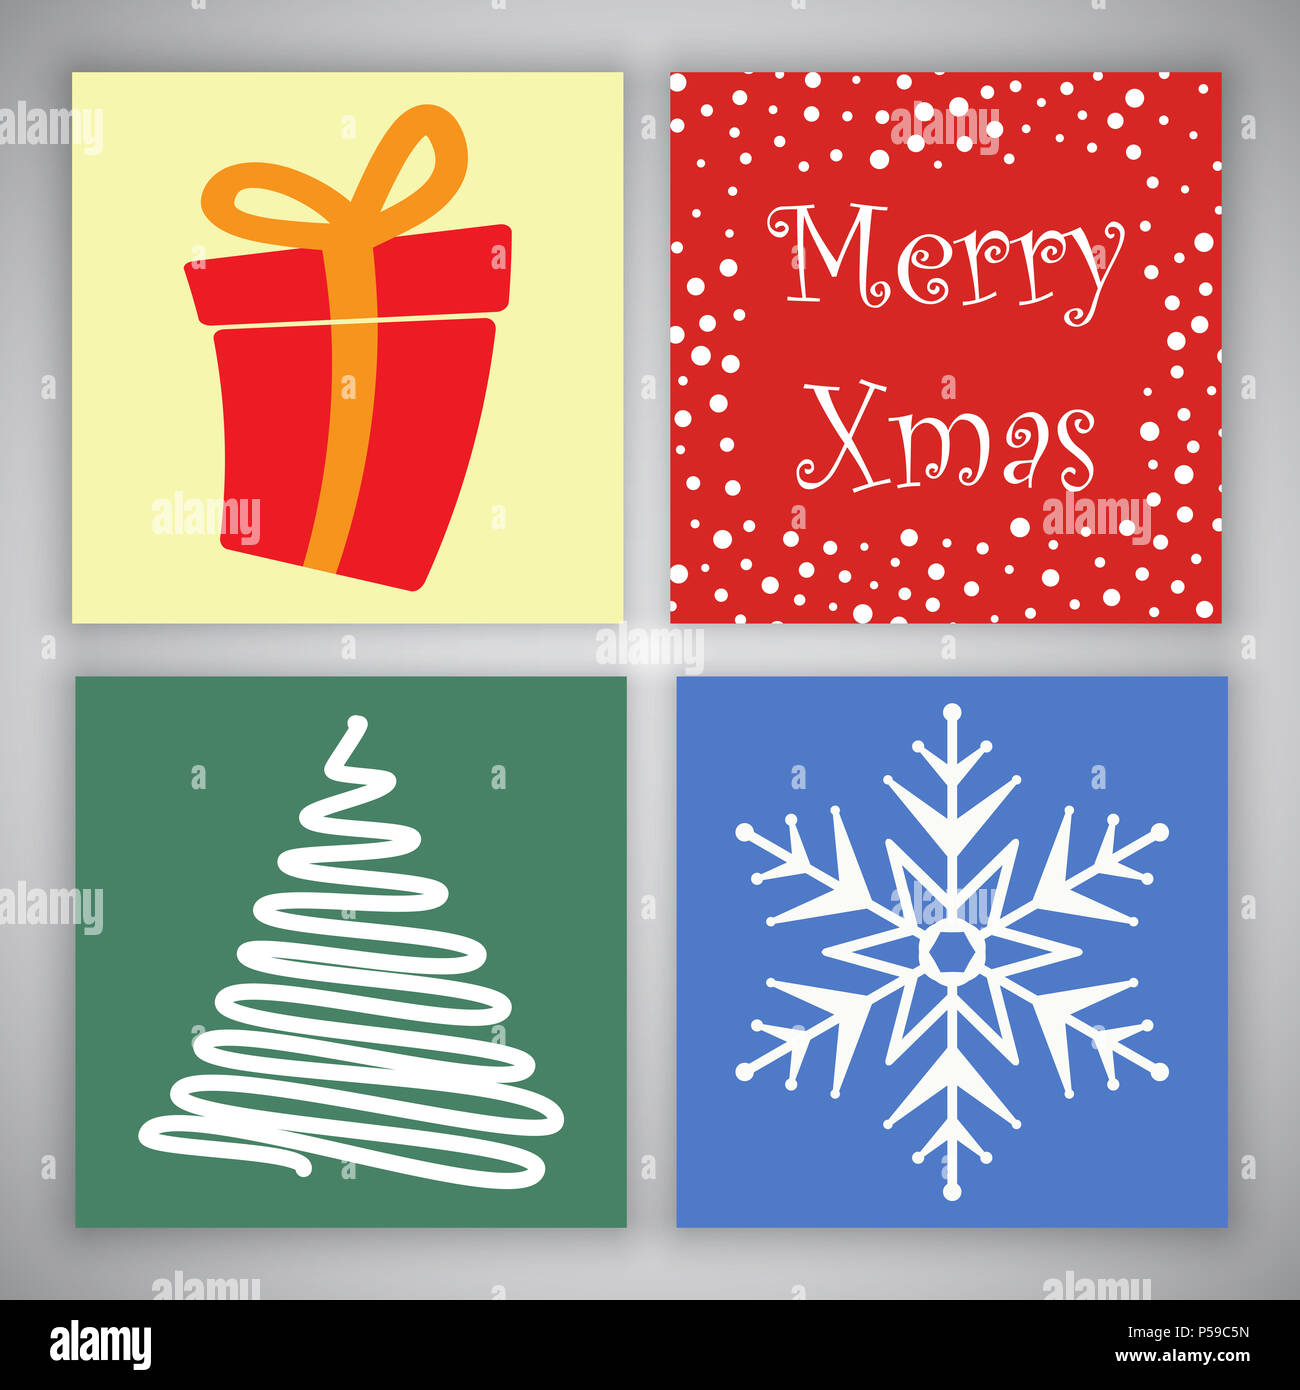 Collection Of Cute Christmas Card Designs Stock Photo 209804833 Alamy